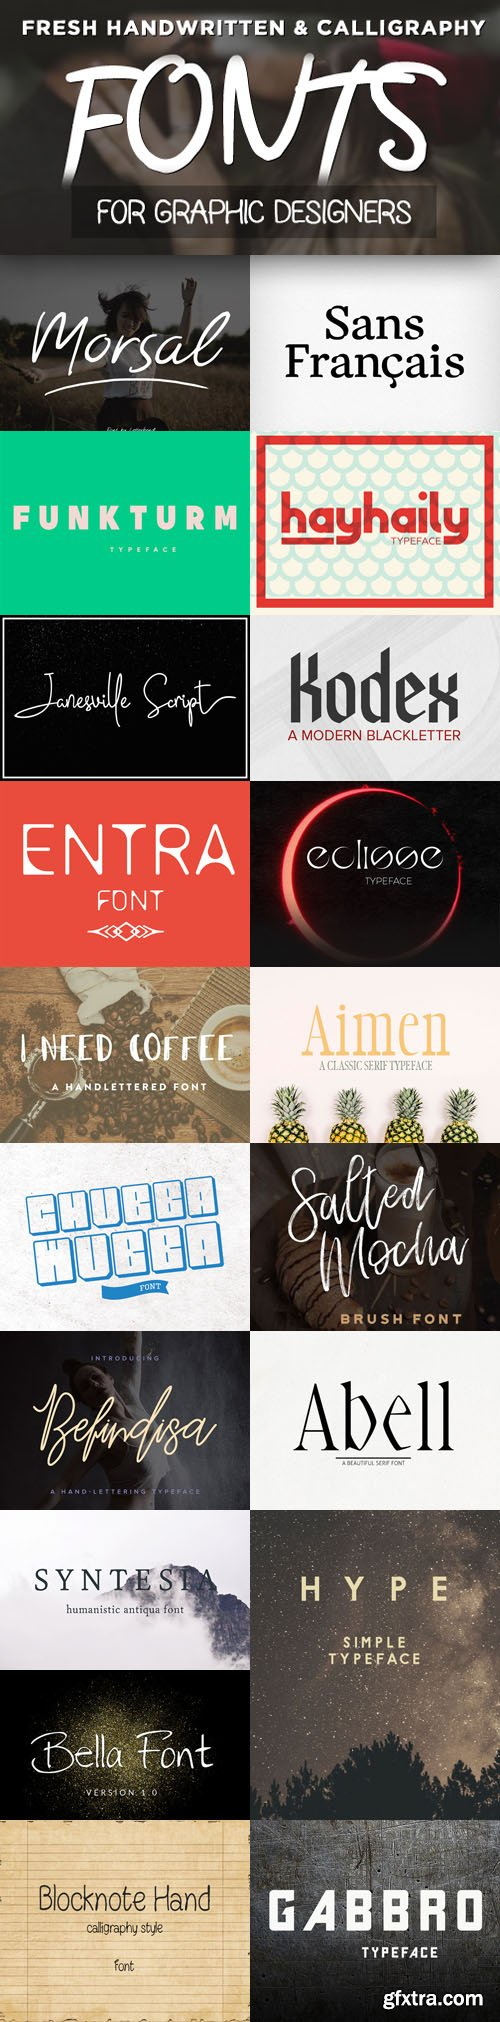 19 Fresh Fonts for Web & Graphic Designers